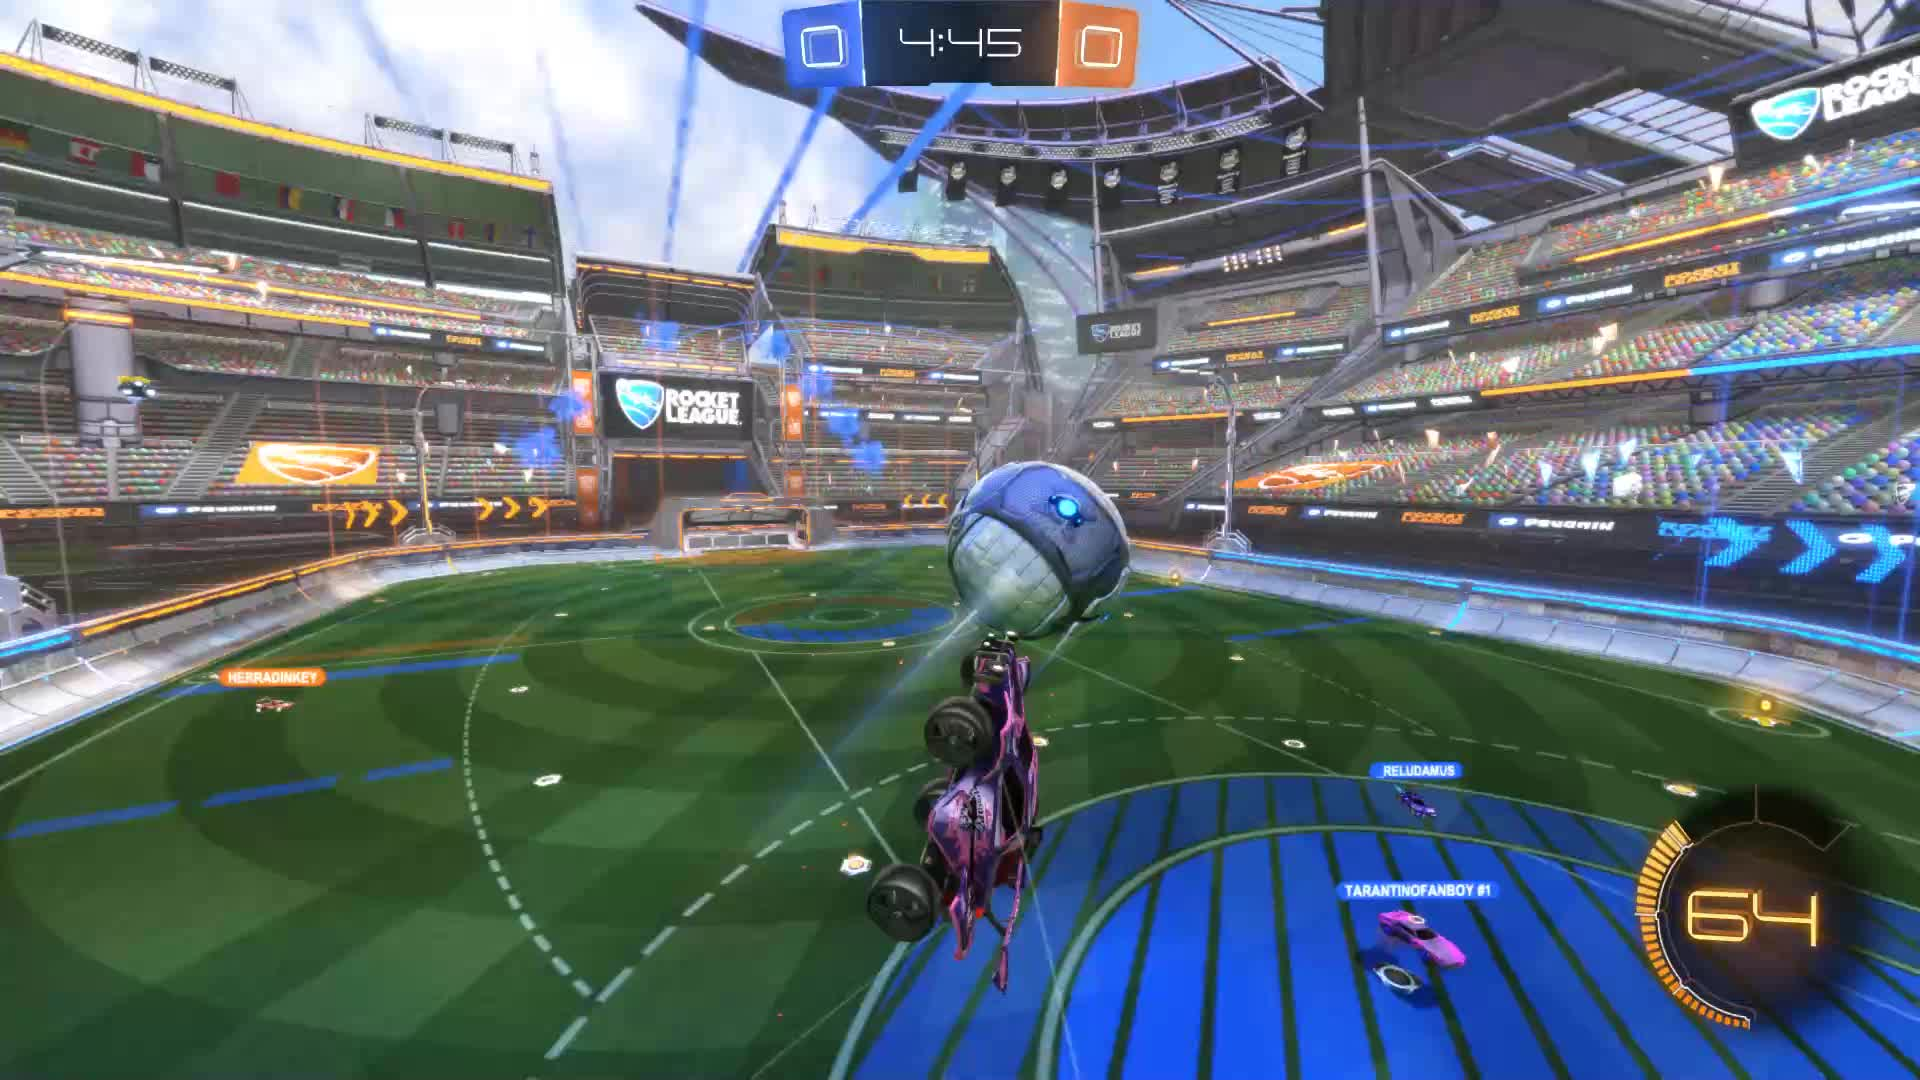 Gif Your Game, GifYourGame, Rocket League, RocketLeague, SCOTLAND FOREVER, Goal 1: SCOTLAND FOREVER GIFs